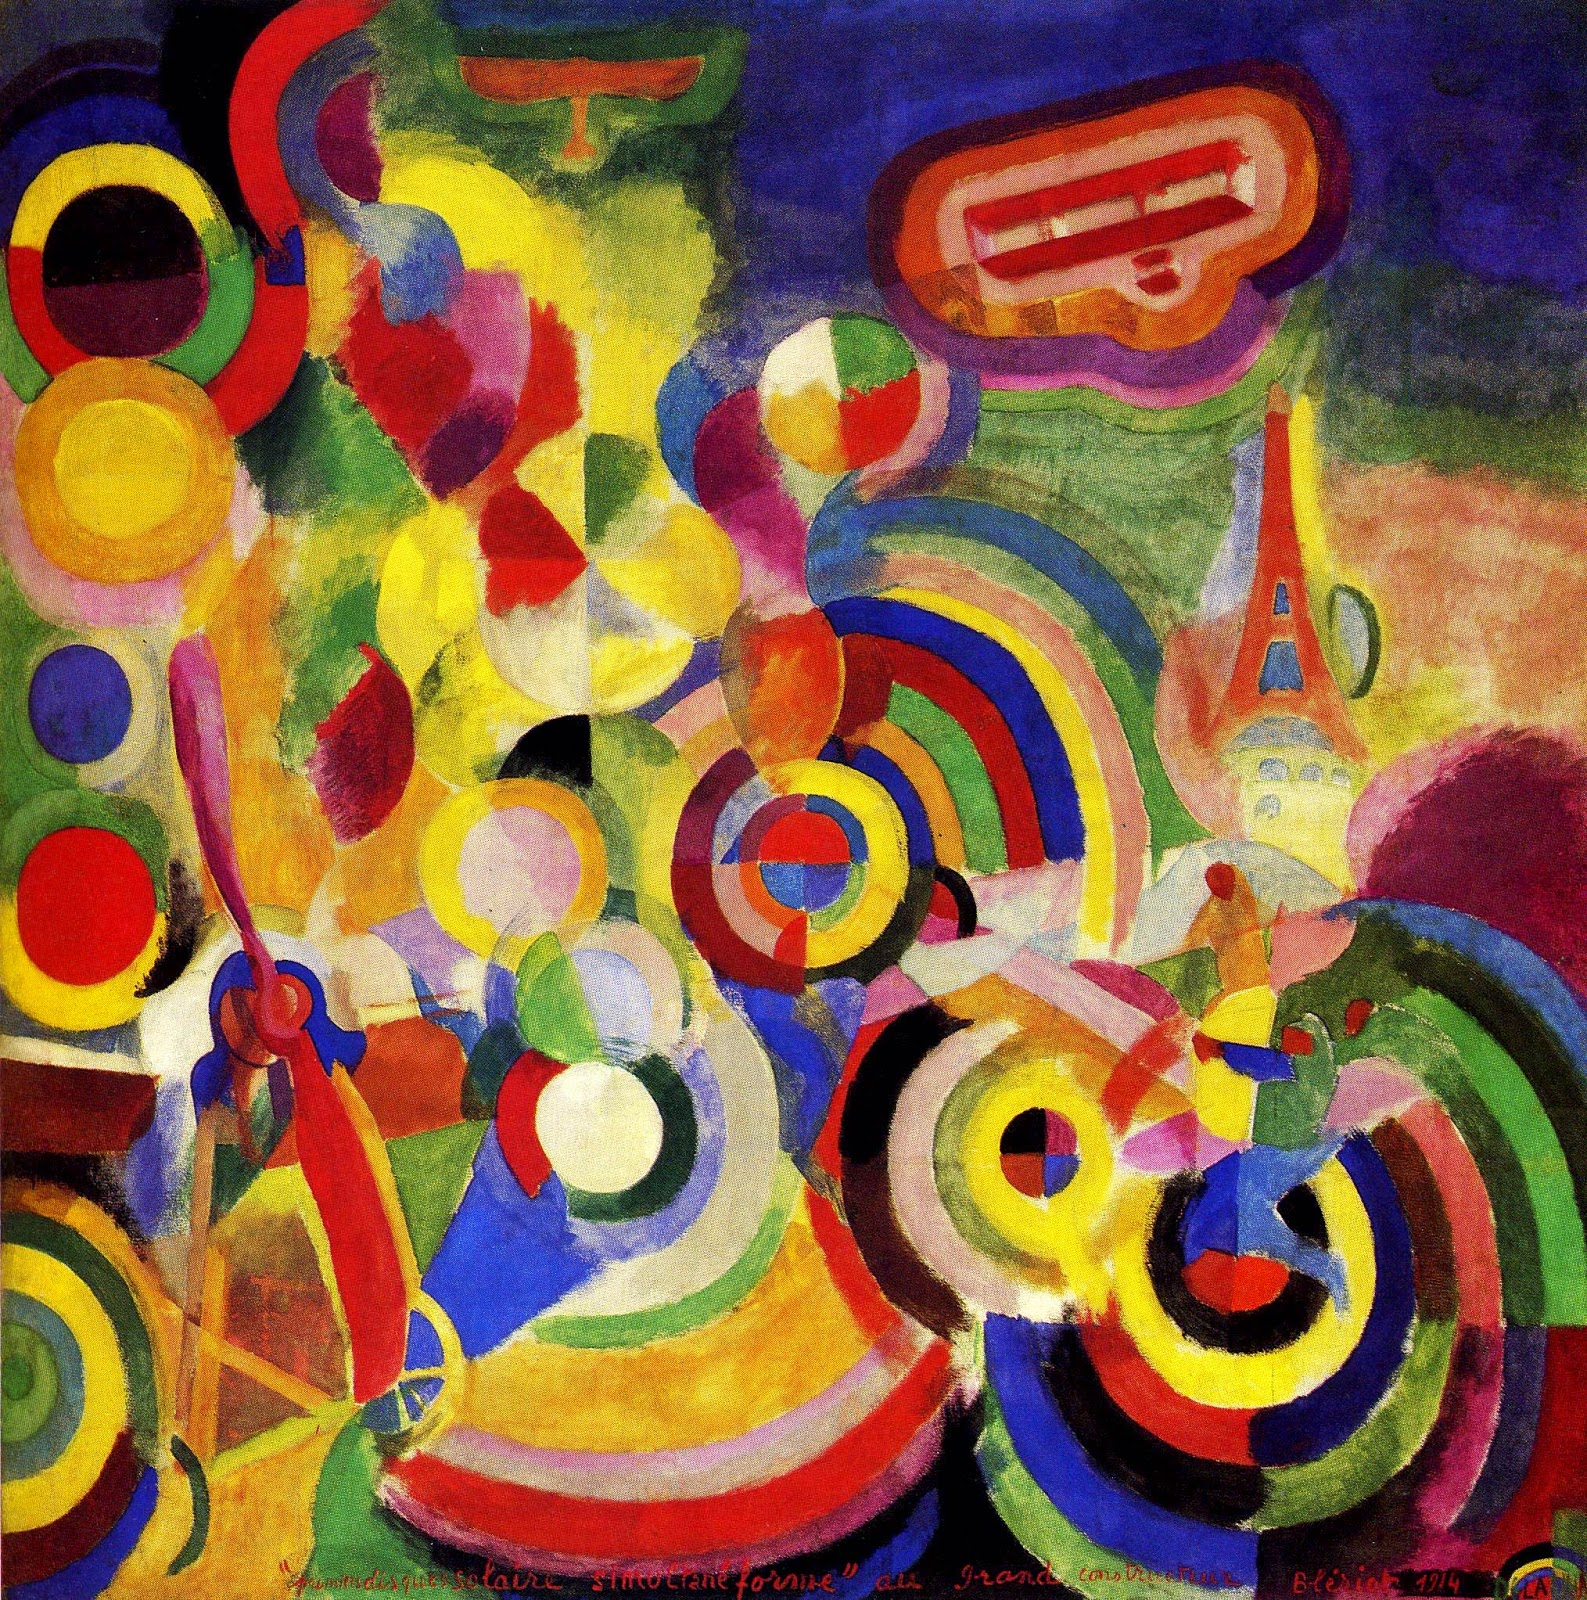 cubism and futurism Cubism and futurism were closely related movements that vied with each other in the economy of renown perception, dynamism, and the dynamism of perception —these were the issues that passed back and.